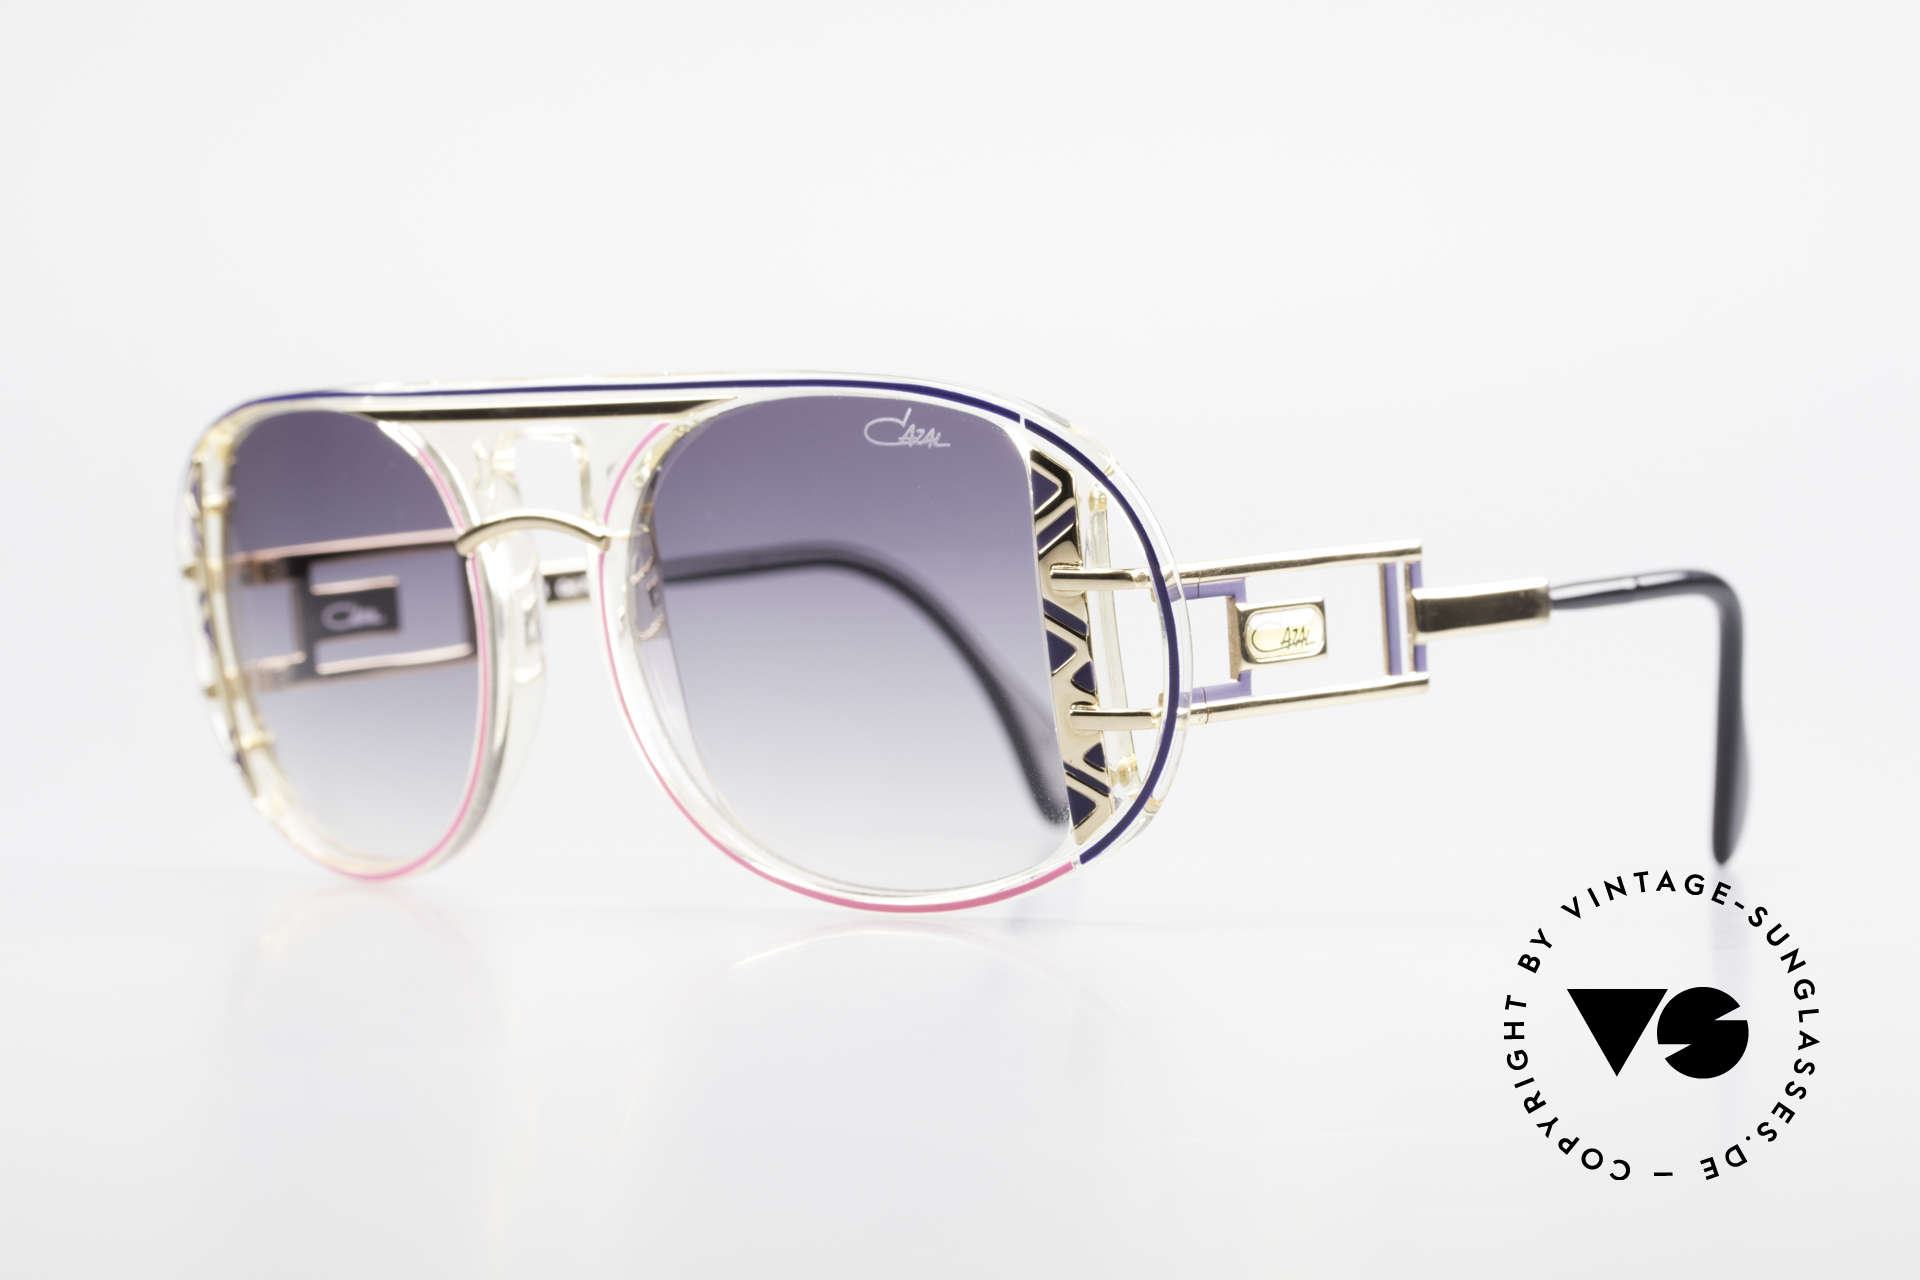 Cazal 875 Rare 90's Designer Sunglasses, unique quality & complex coloring - just vintage!, Made for Men and Women